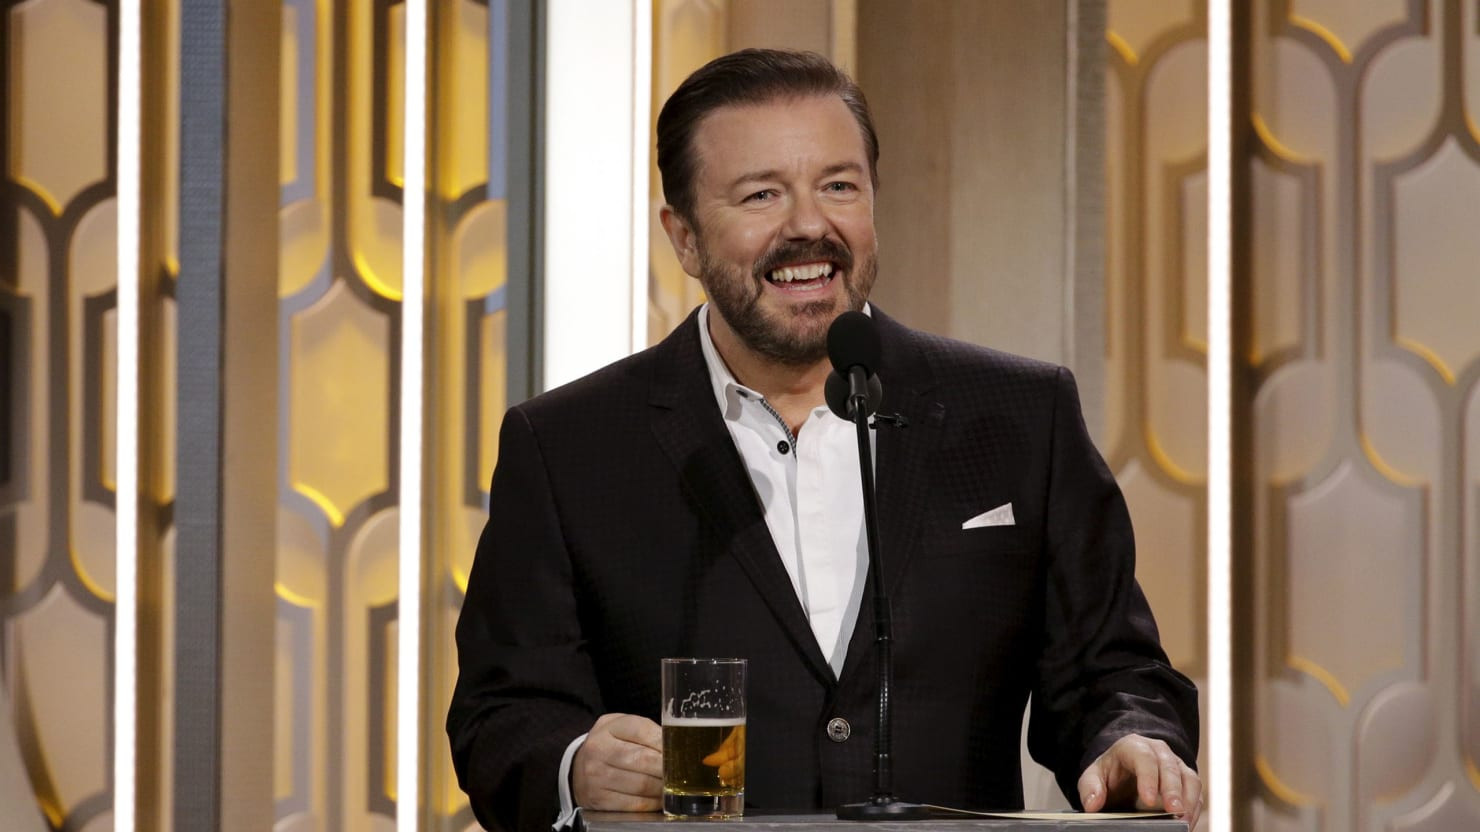 Discussion on this topic: Ricky Gervais on Aging, Offending People, and , ricky-gervais-on-aging-offending-people-and/